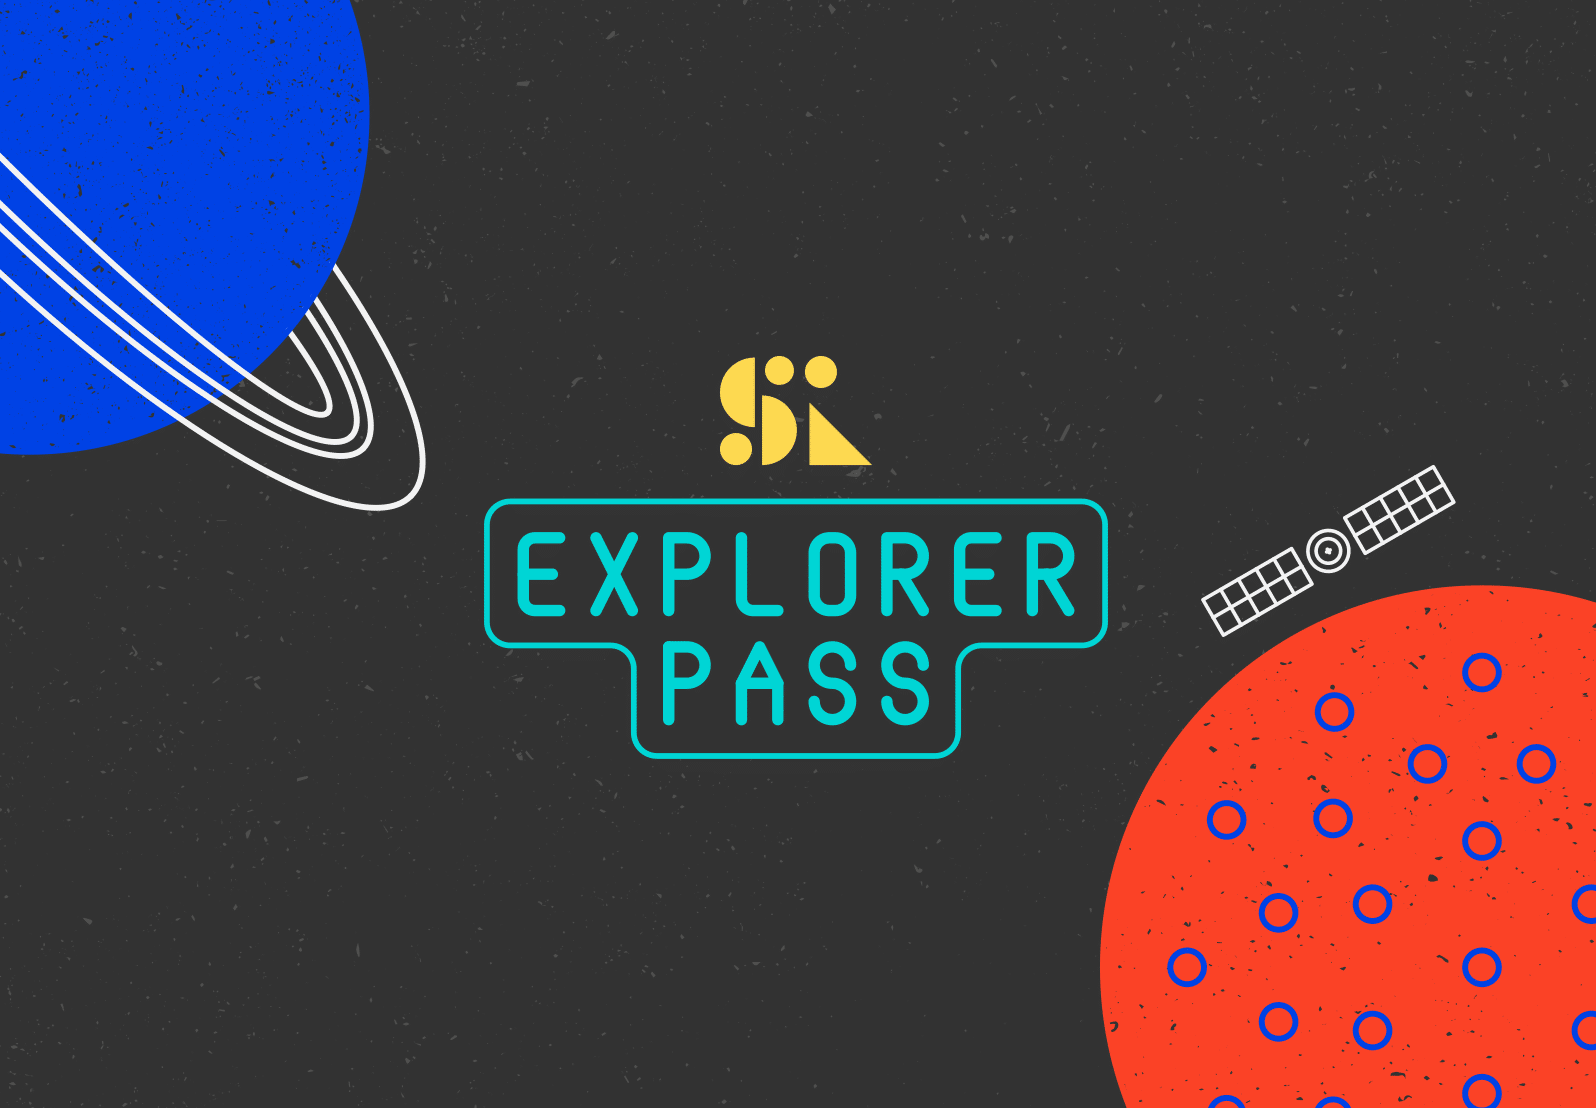 All systems go...! Launching Saturday Kids Explorer Pass!